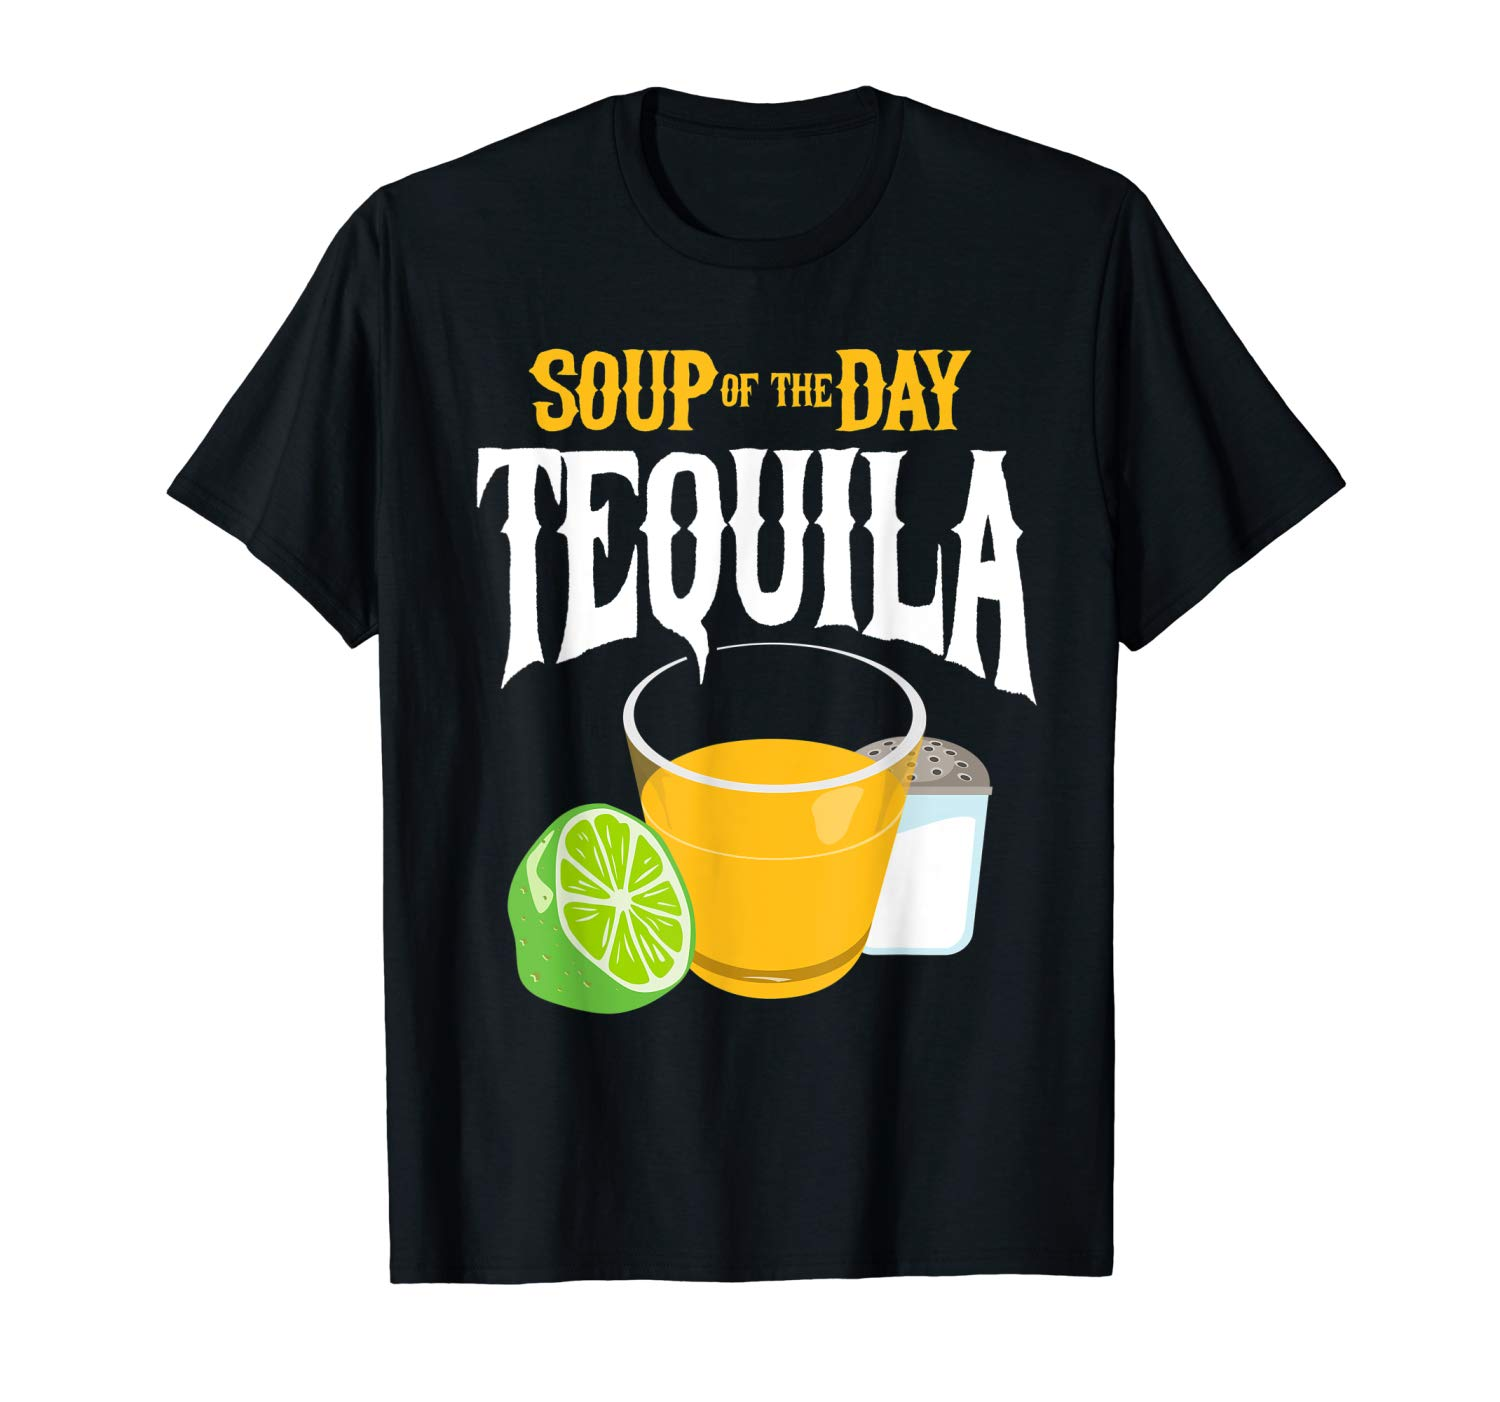 Soup of the Day Tequila - Funny Tequila T-Shirt 2020 Short Sleeve O-Neck(China)